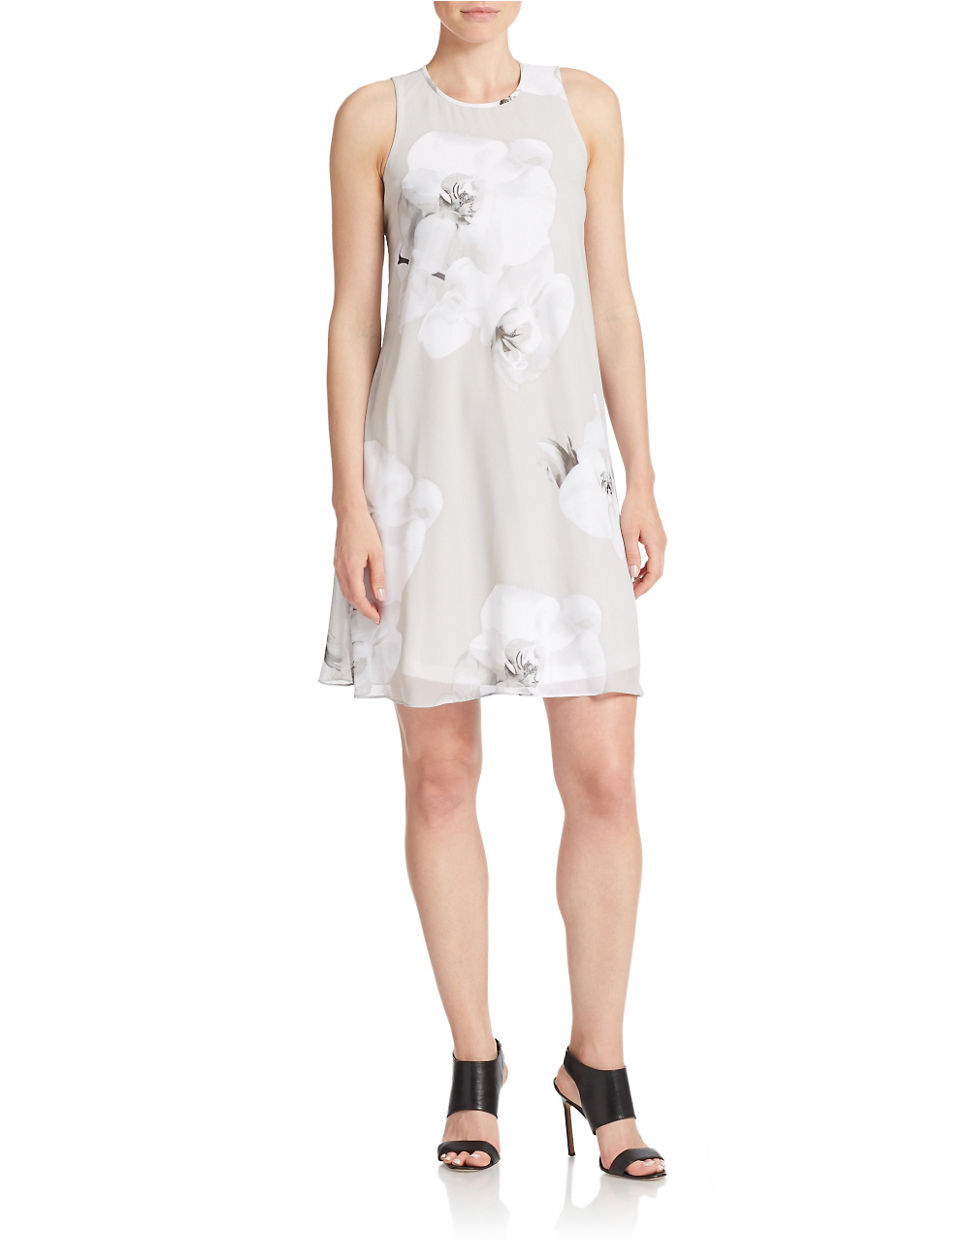 Crepe Floral Dress Calvin Klein